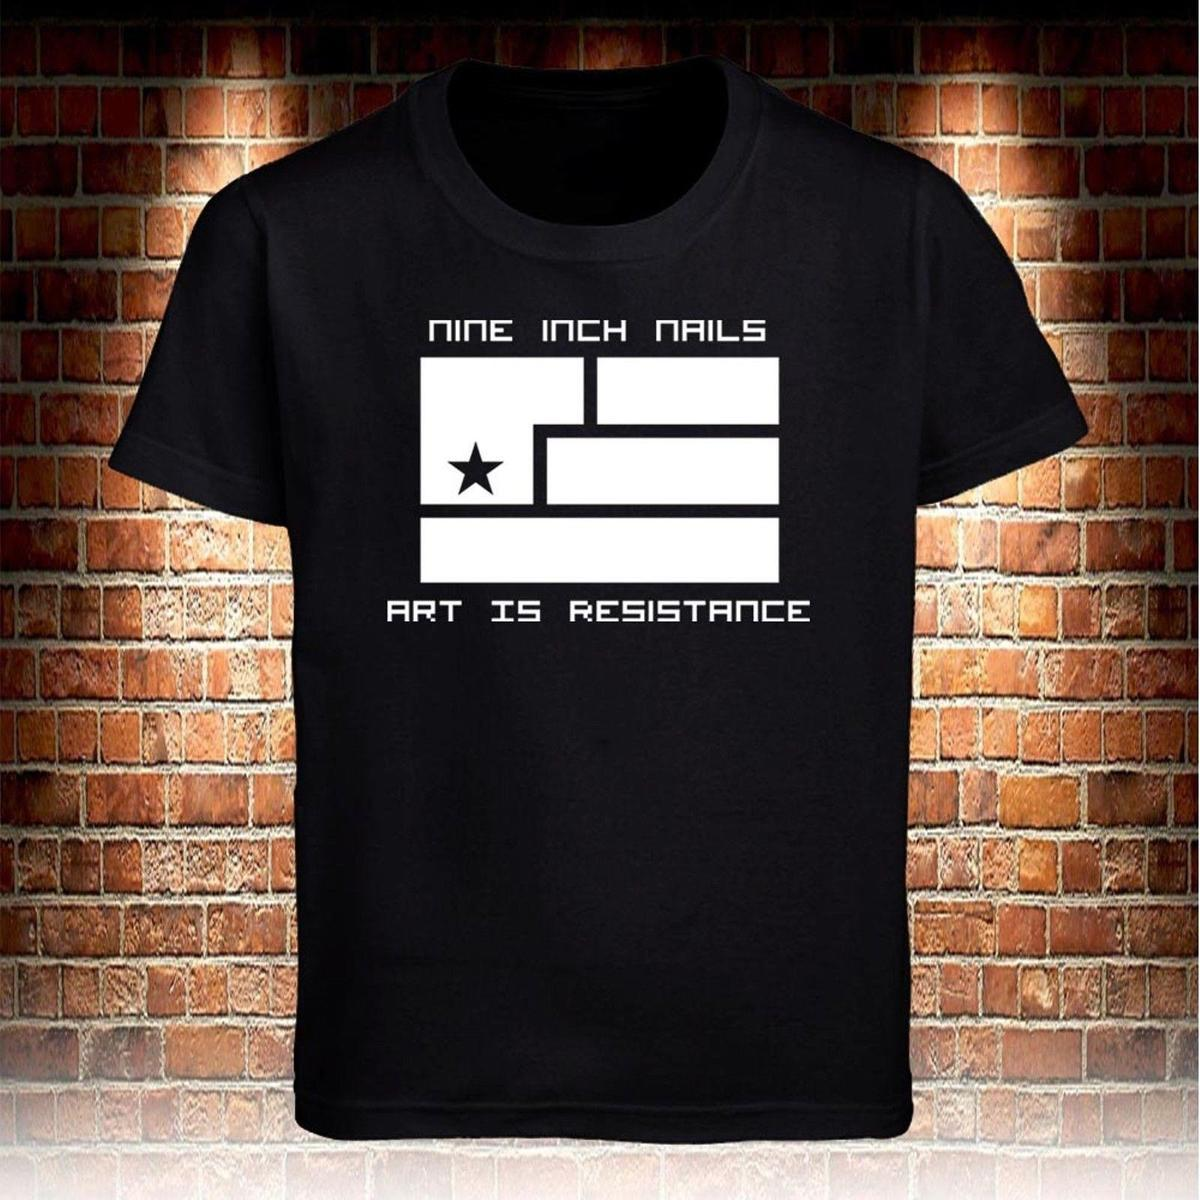 2300c0fded1cc Black T-shirts Nine Inch Nails NIN Art is Resistance Men s Size S to 3XL